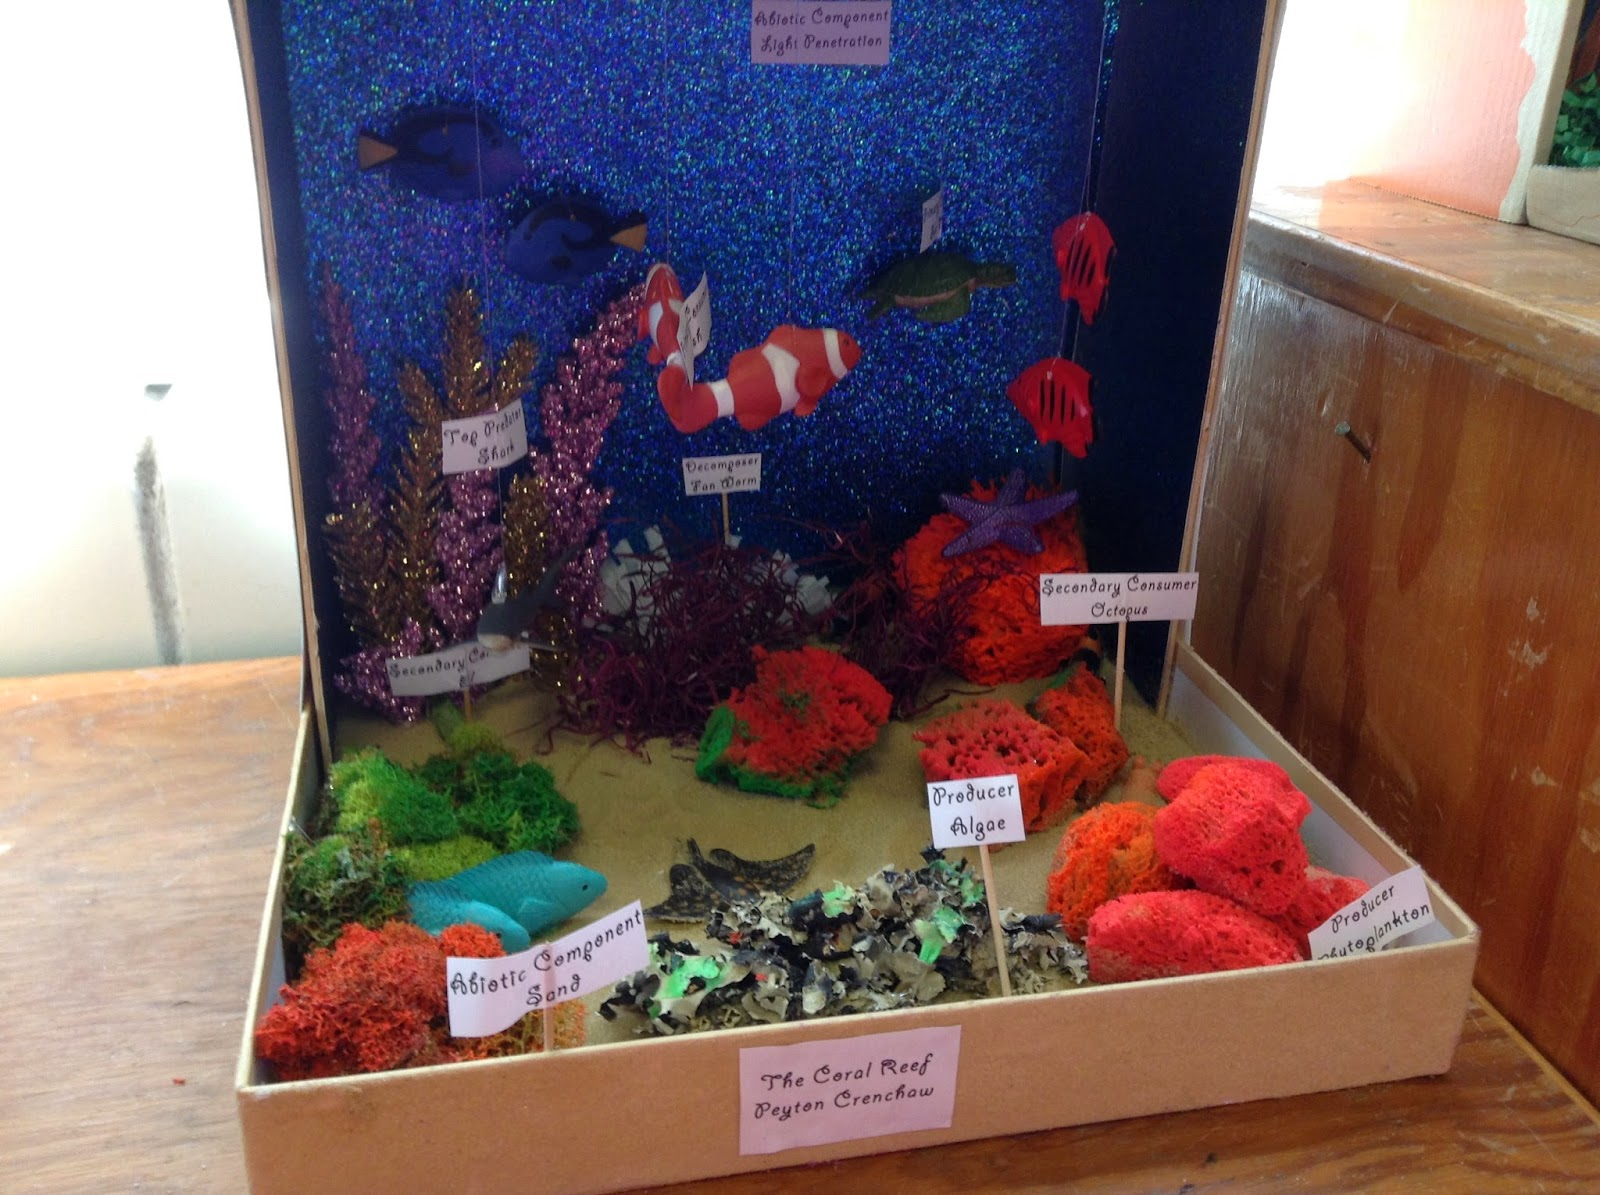 The cougars roar this diorama of the coral reef is made by peyton crenchaw this diorama is made with real toys and is realistic it also has lights along the top and a lot sciox Image collections